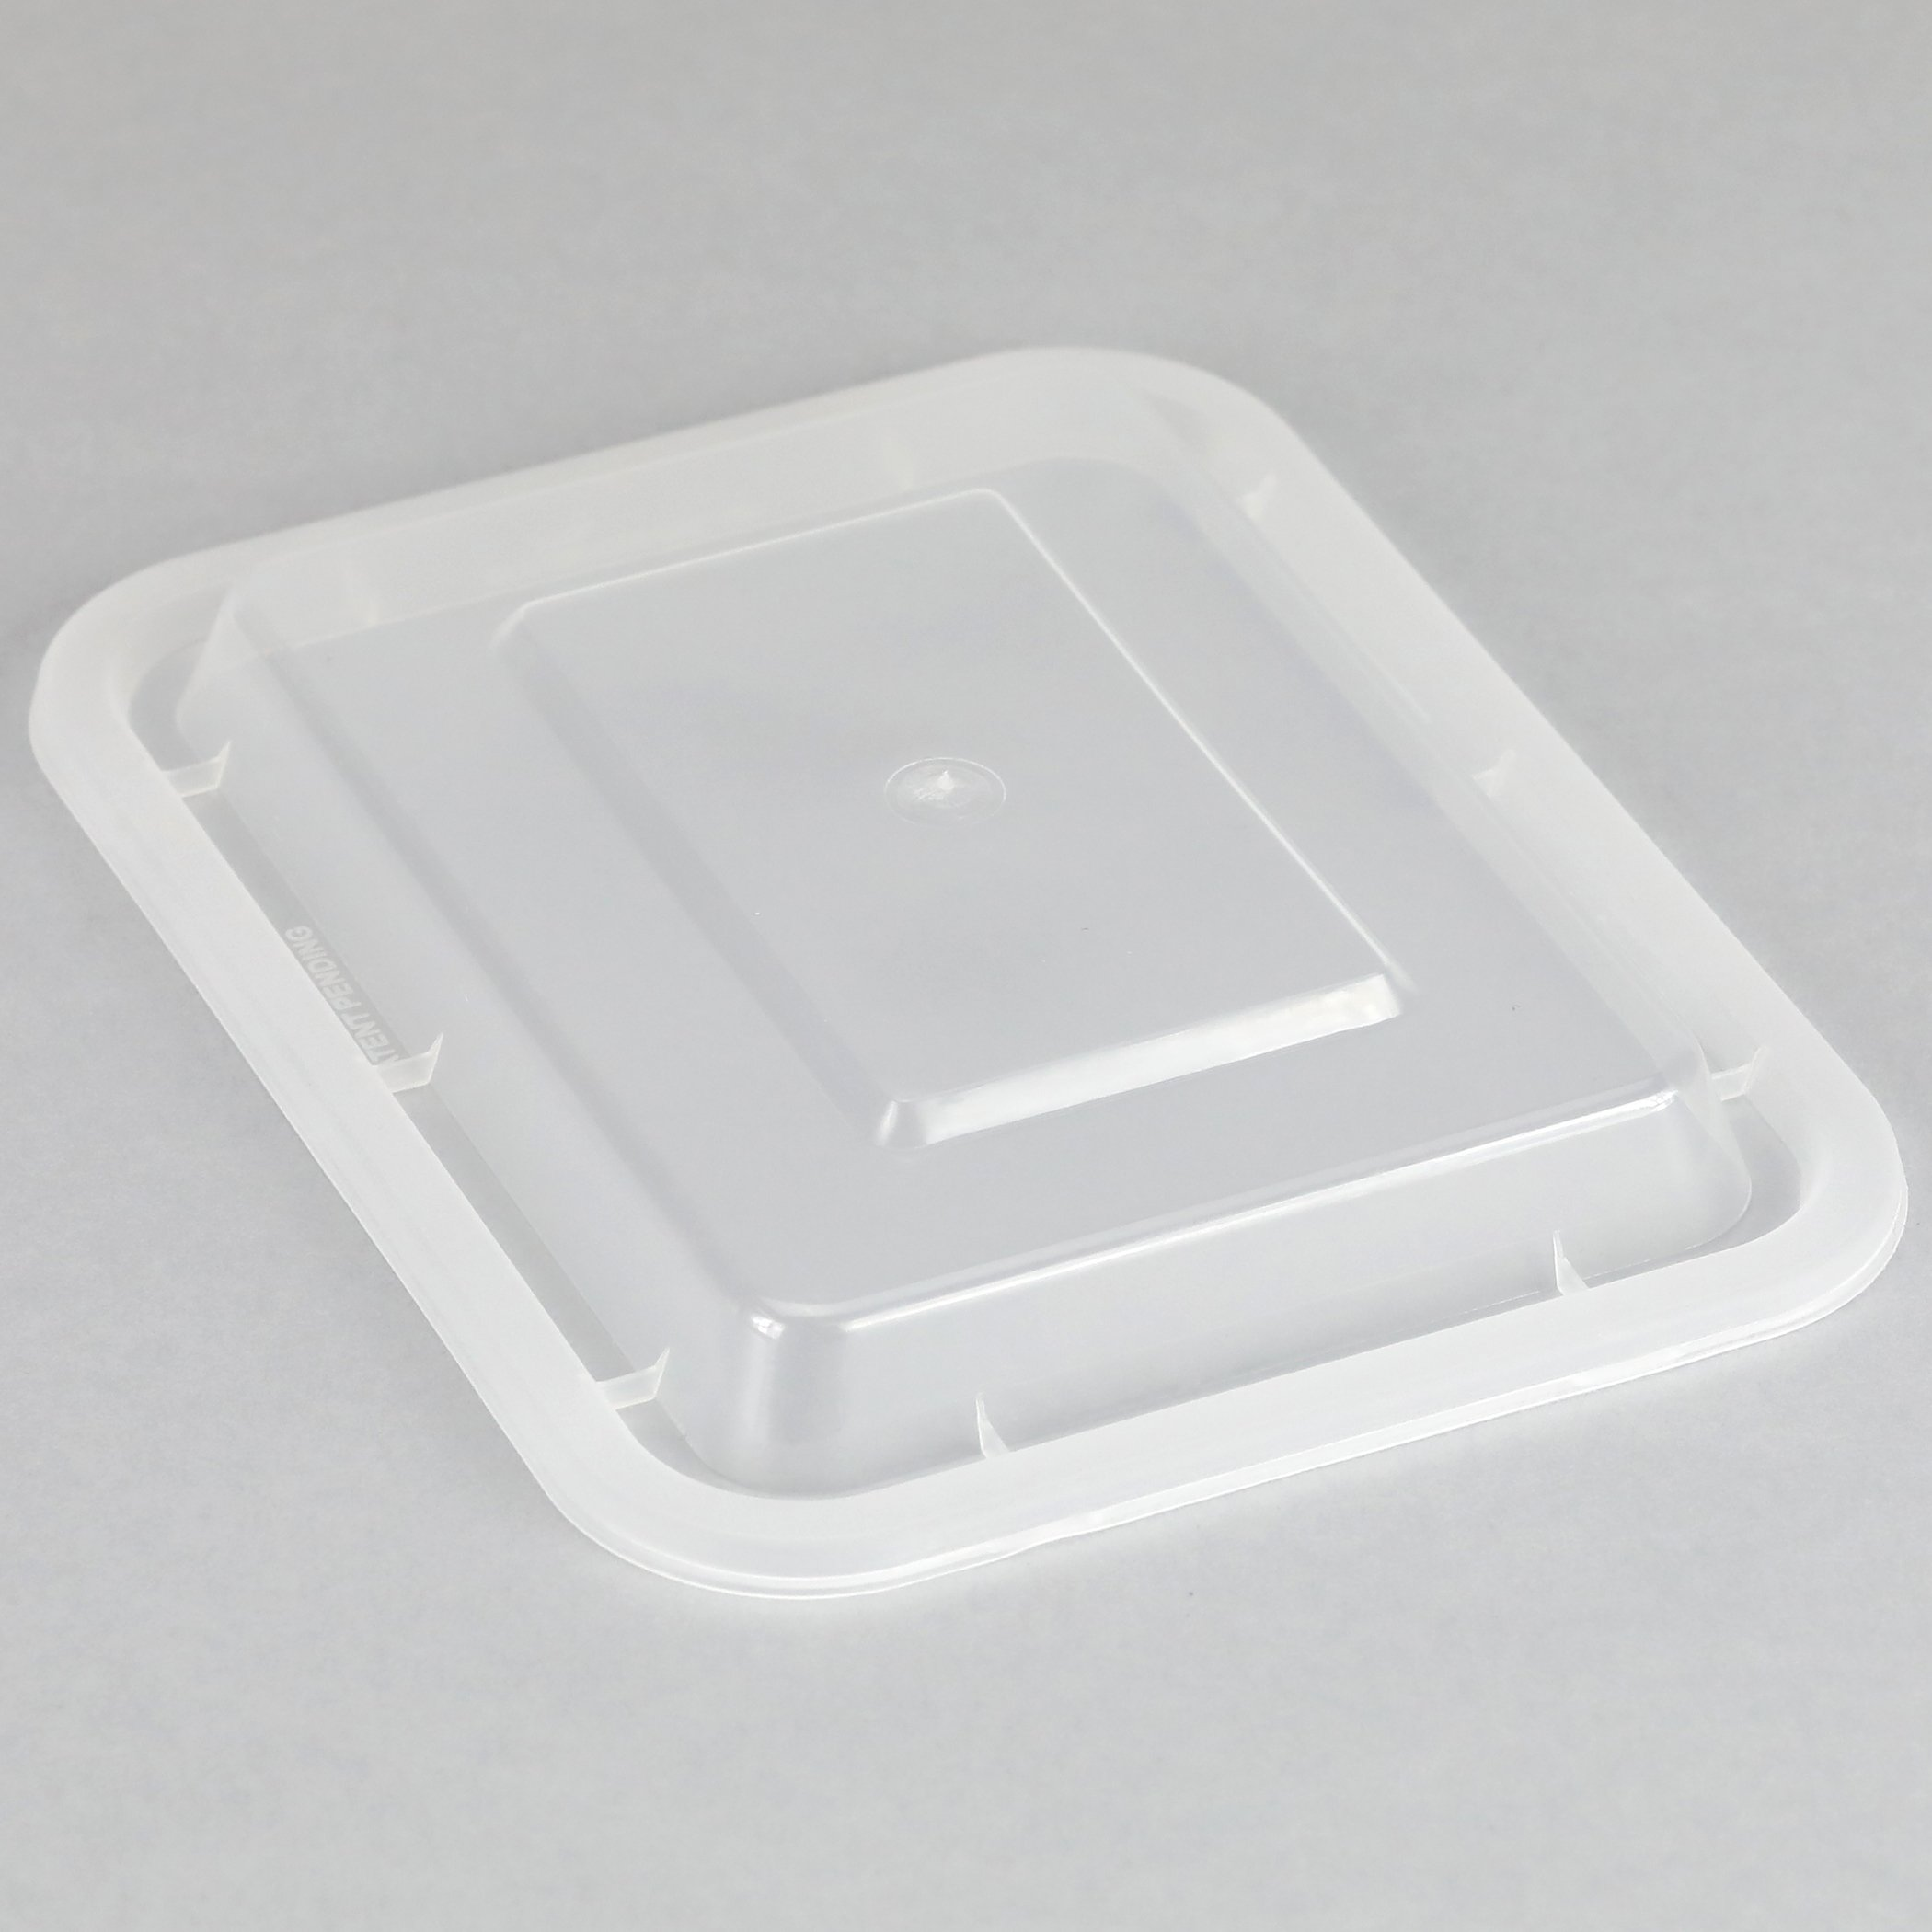 Simply Deliver 5 x 4 Medium Rectangular Container with Lid Microwavable 150-Count Black